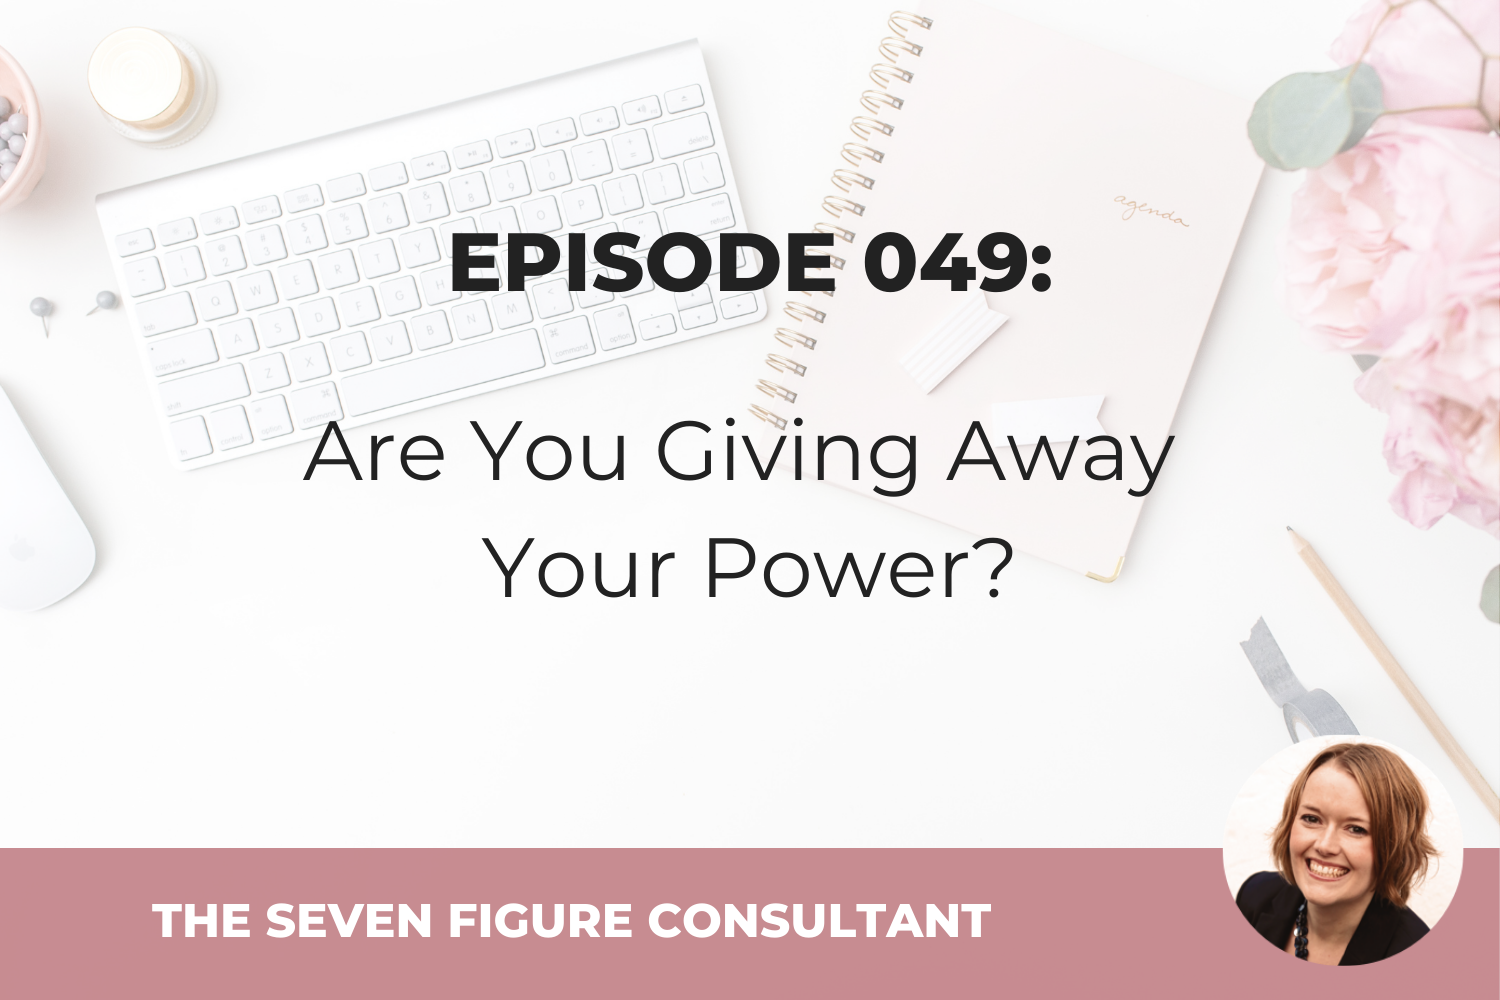 Episode 049: Are You Giving Away Your Power?